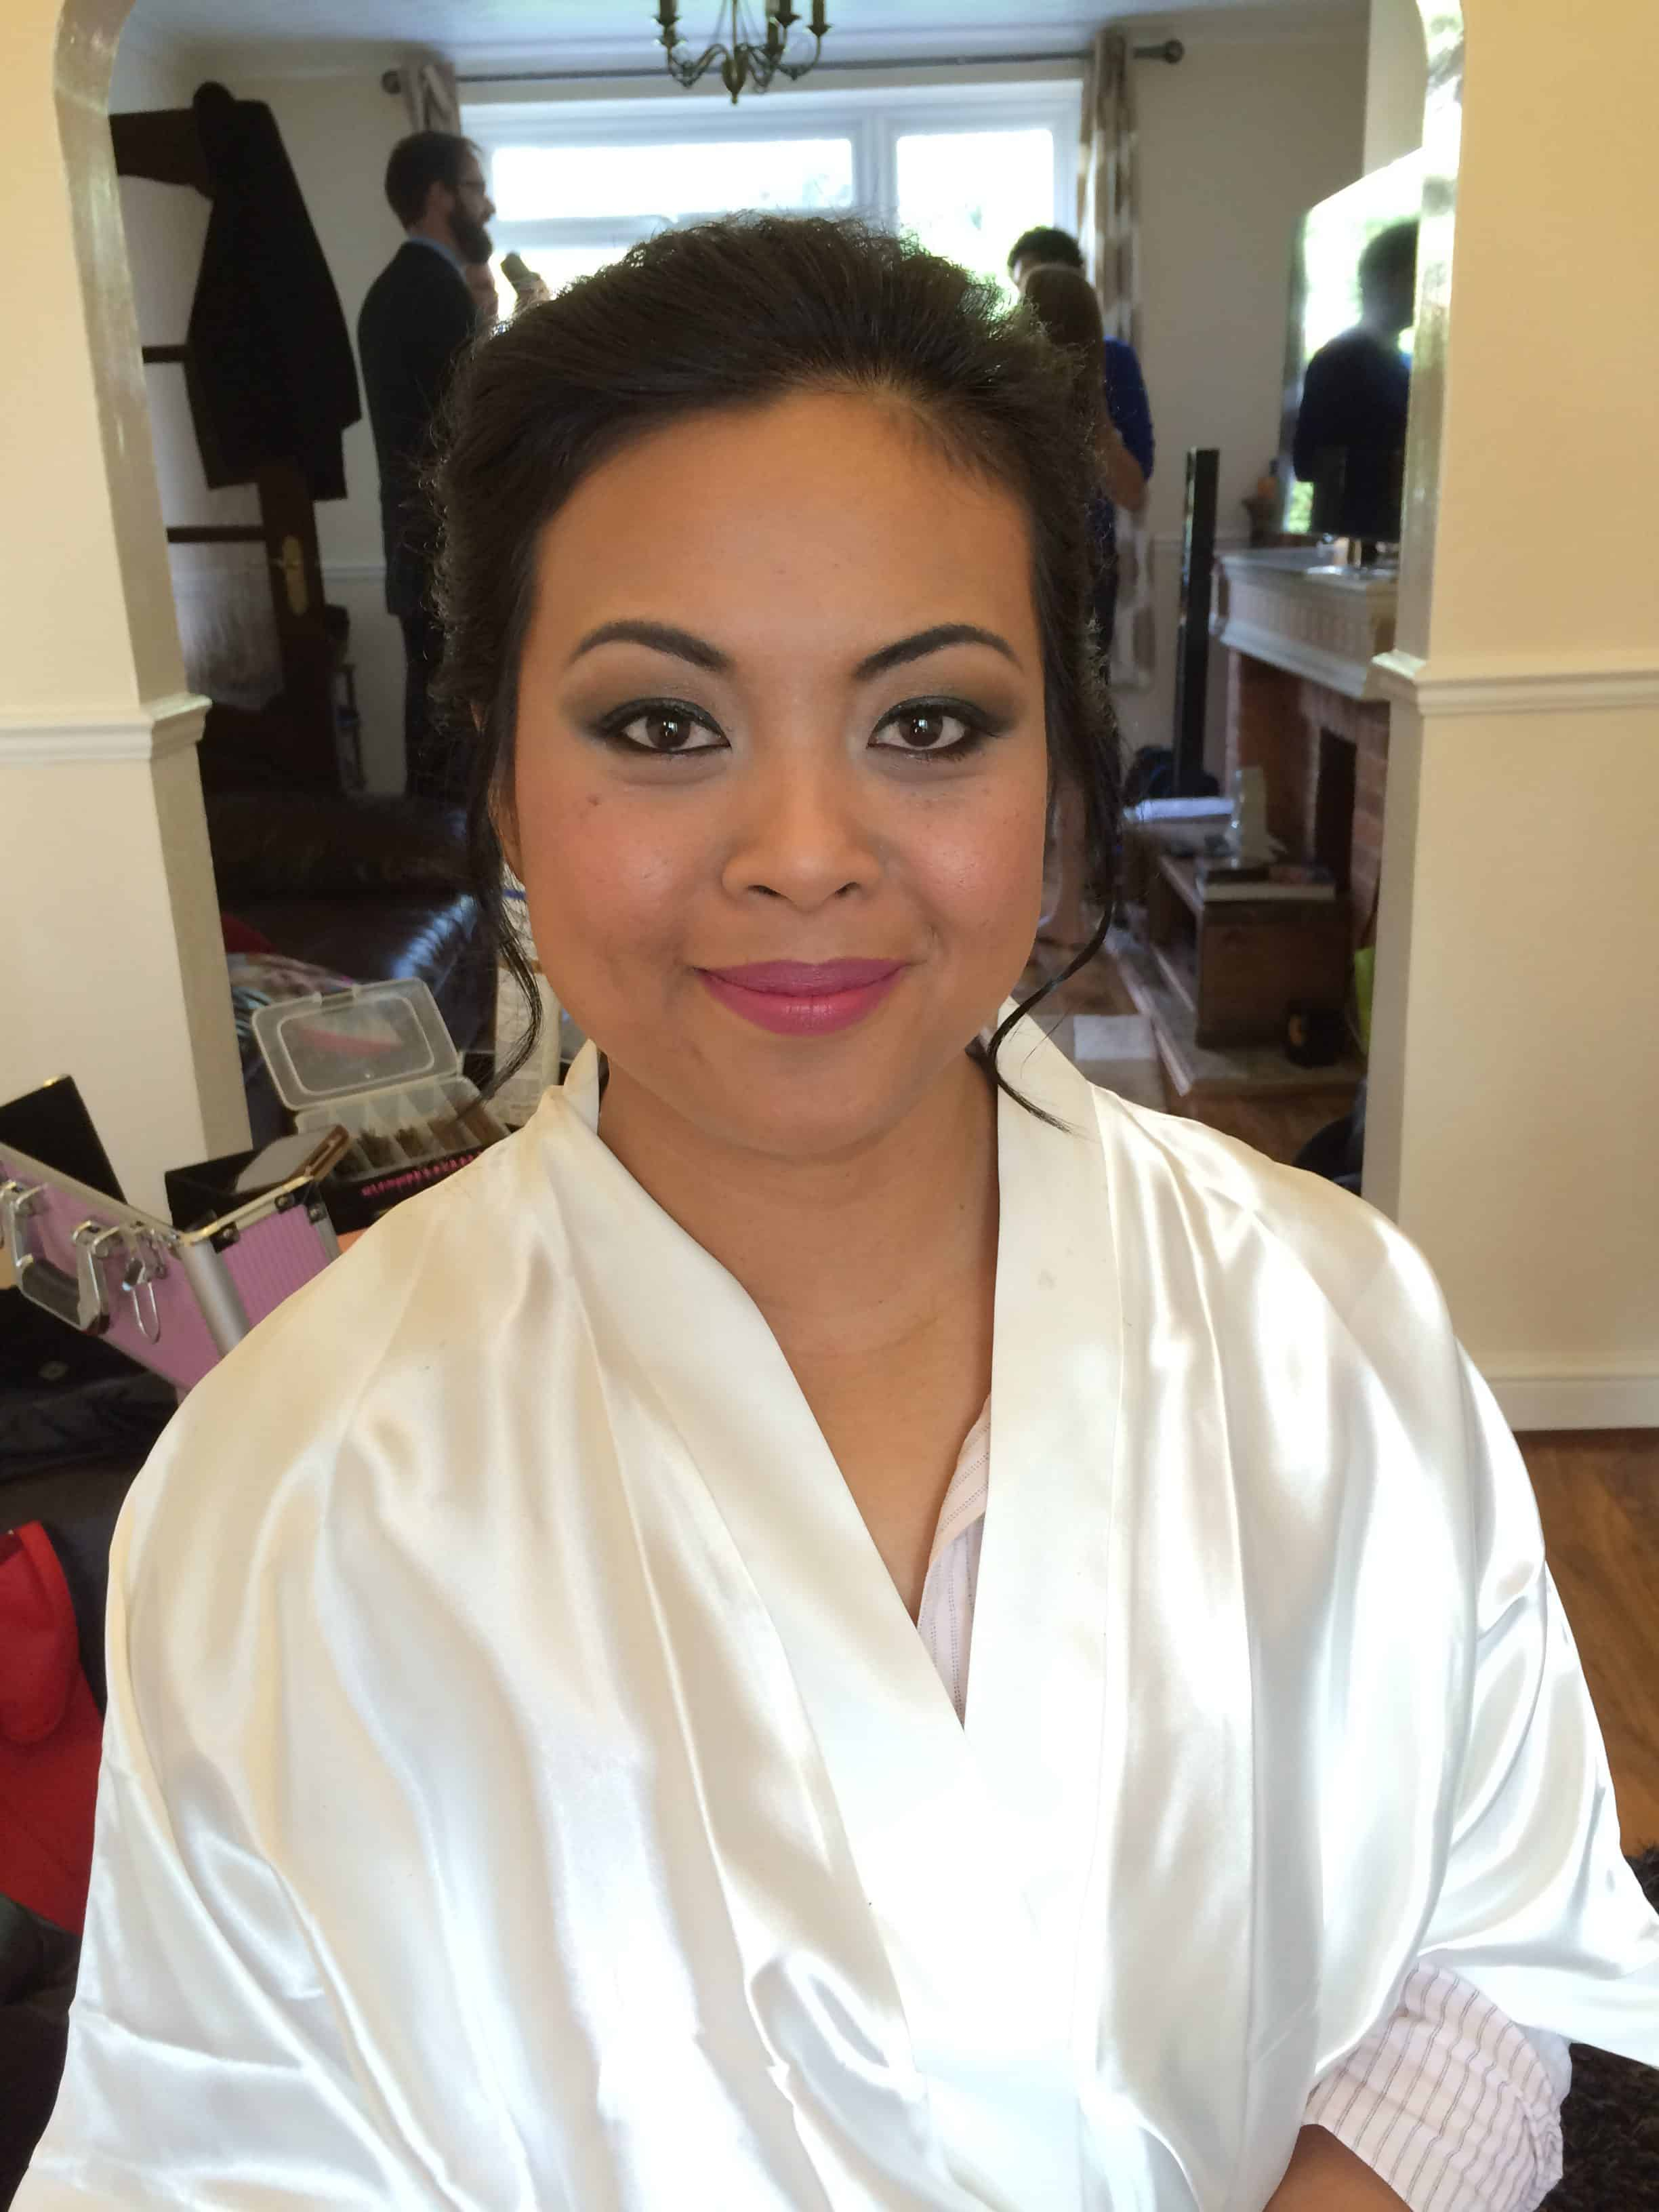 Beautiful natural makeup on a bride